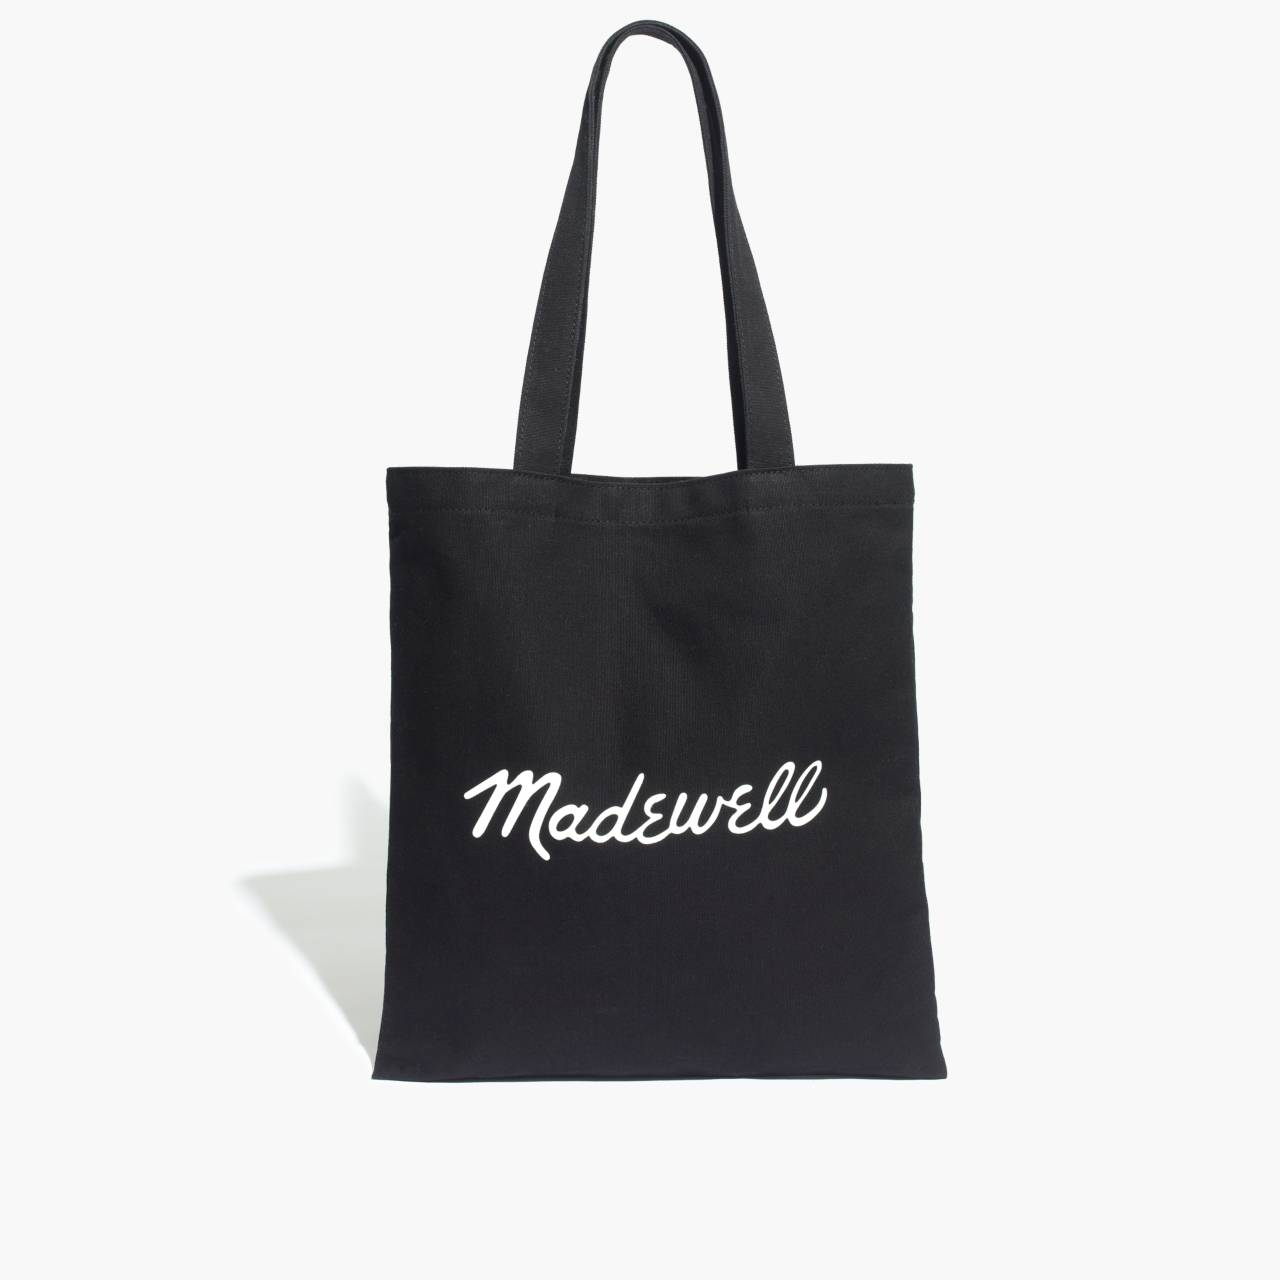 The Reusable Canvas Tote in true black image 4